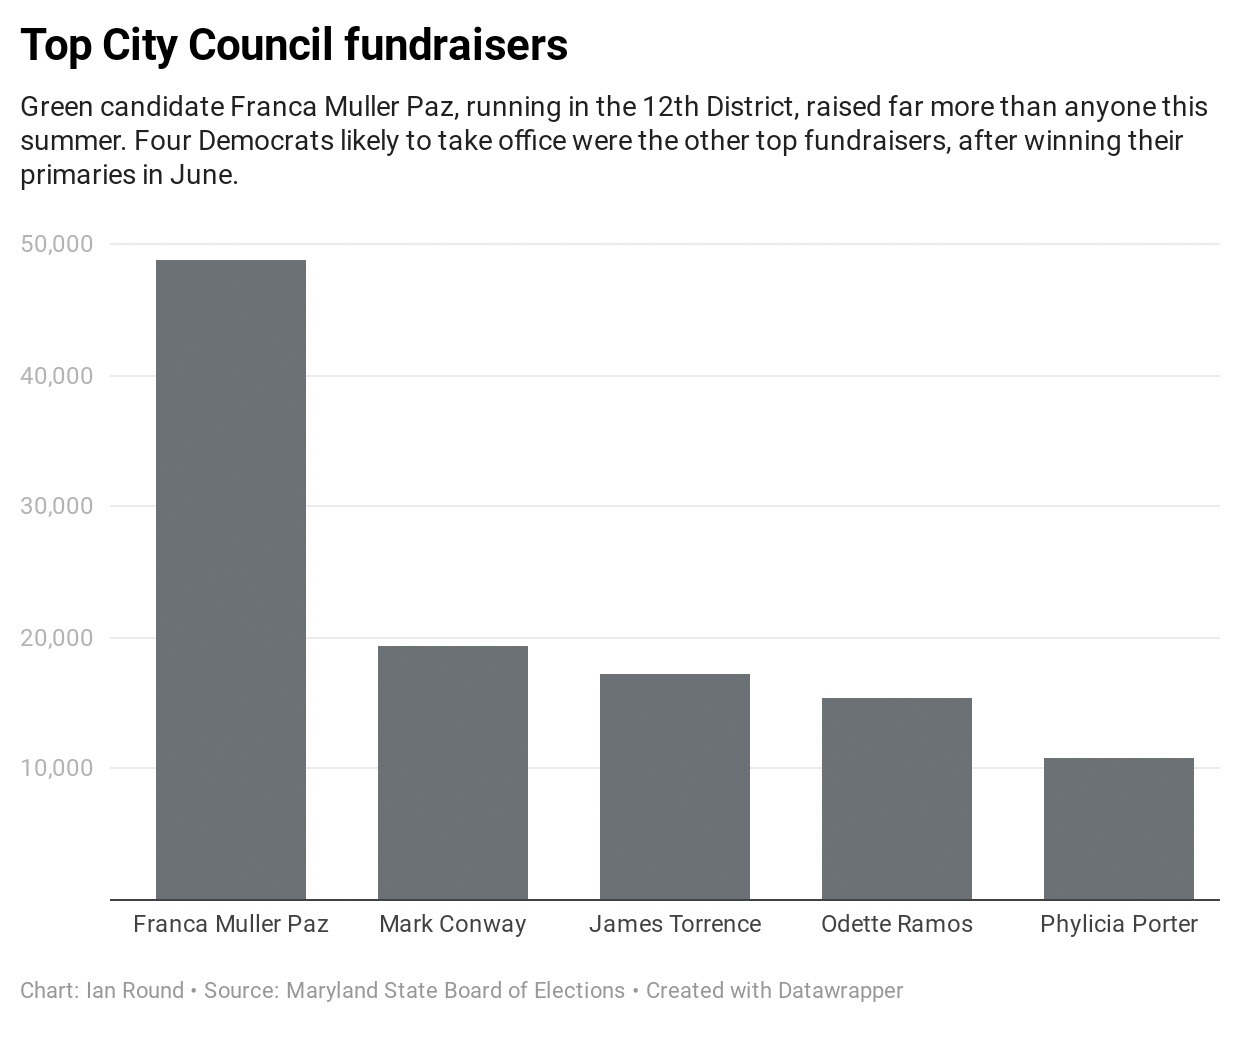 The Green Party's Franca Muller Paz' insurgent 12th district City Council campaign generated the highest post-primary campaign fundraising. (elections.maryland.gov)